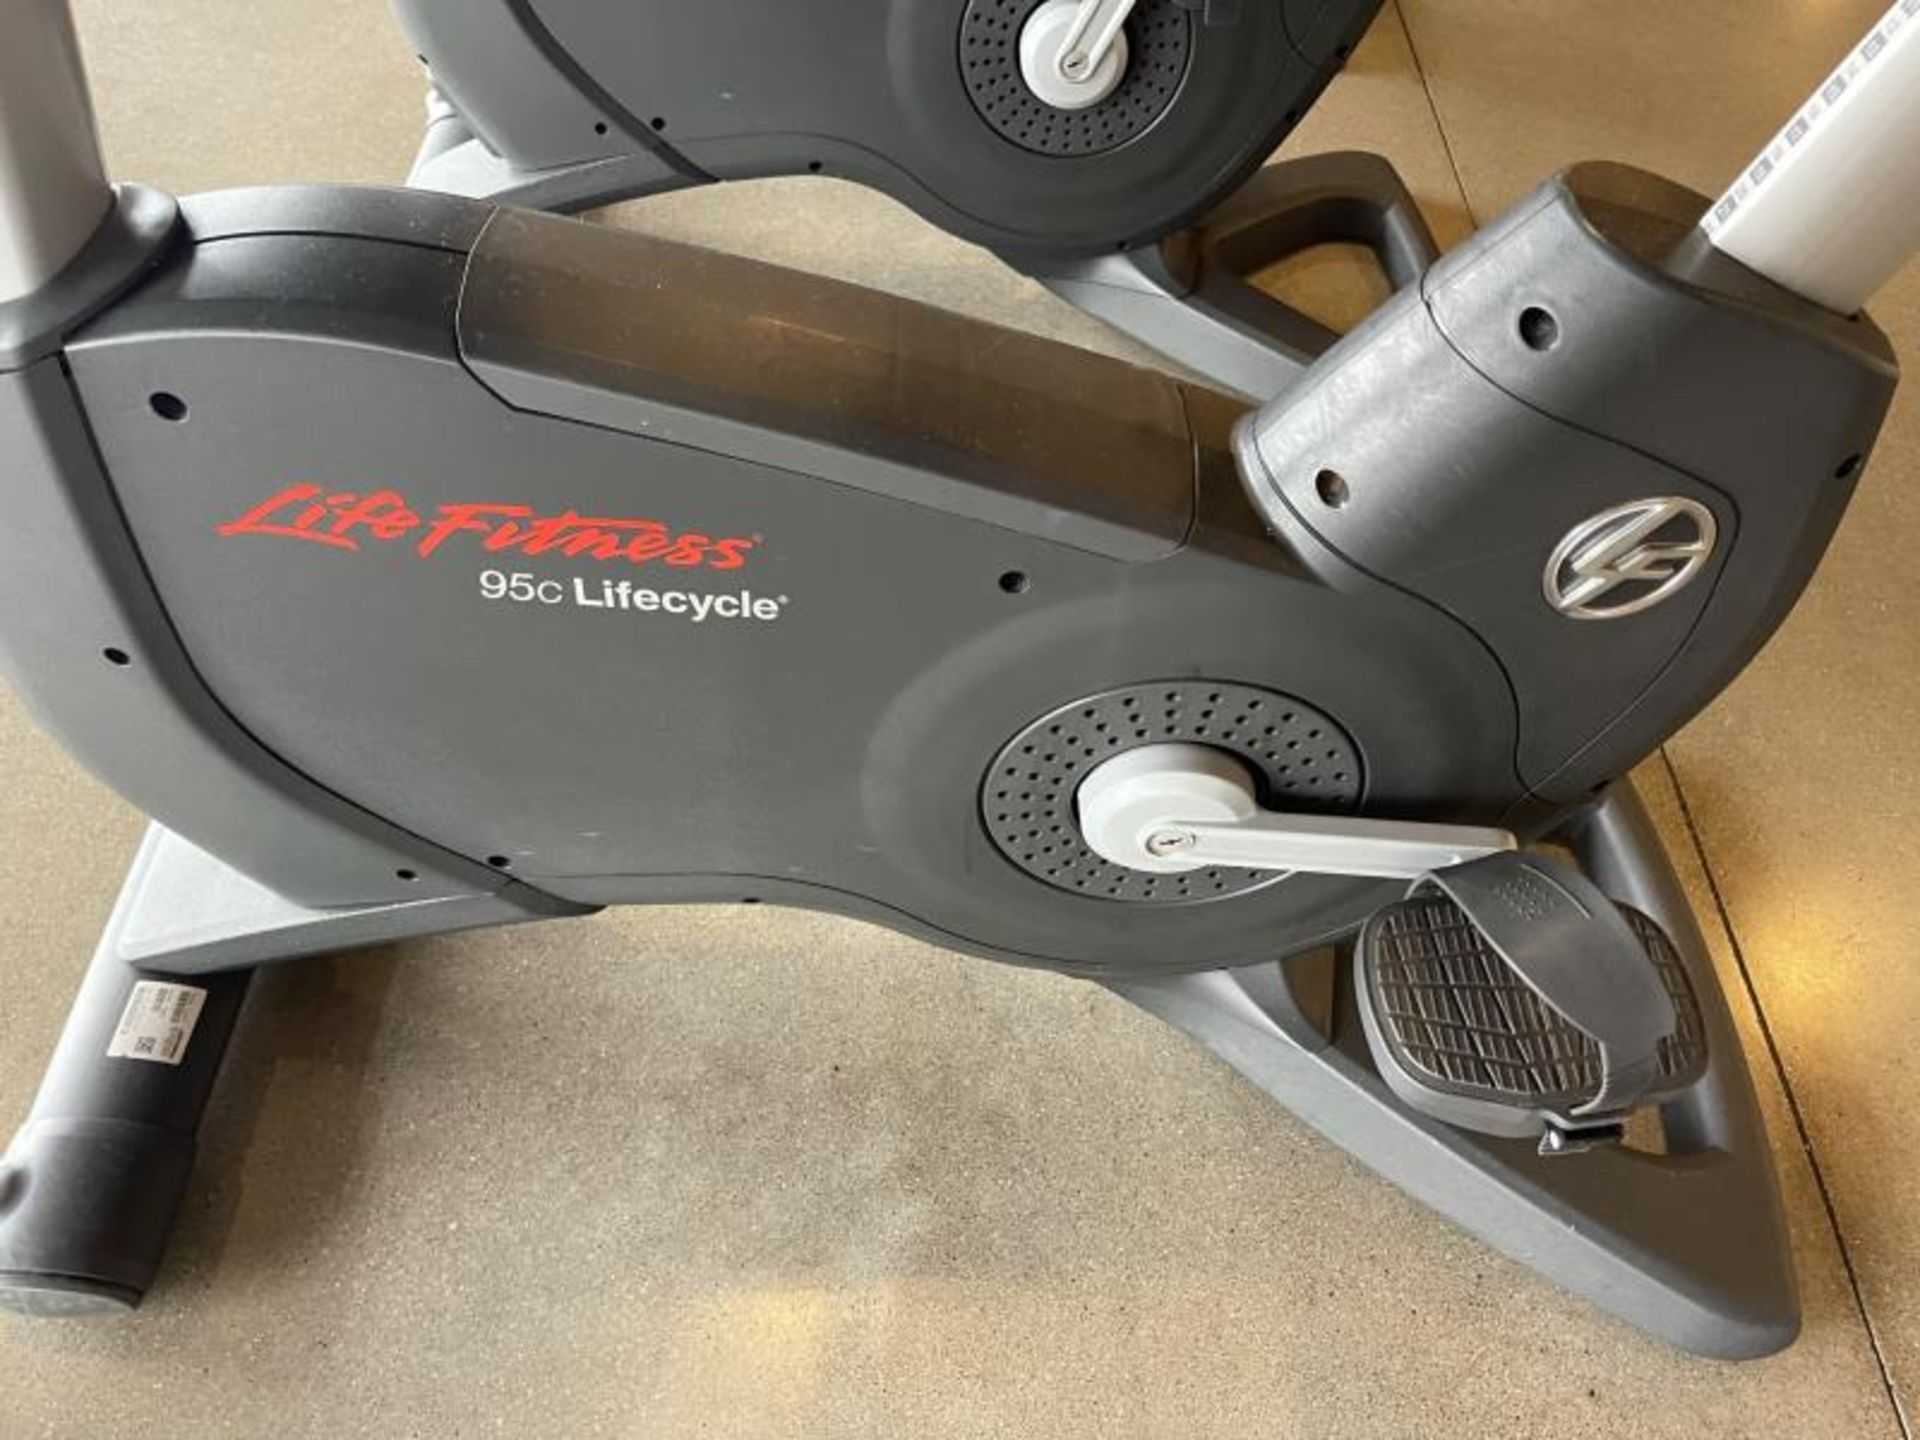 Life Fitness Exercise Bike M: 95CLifecycle, SN: CLV102819 - Image 2 of 5